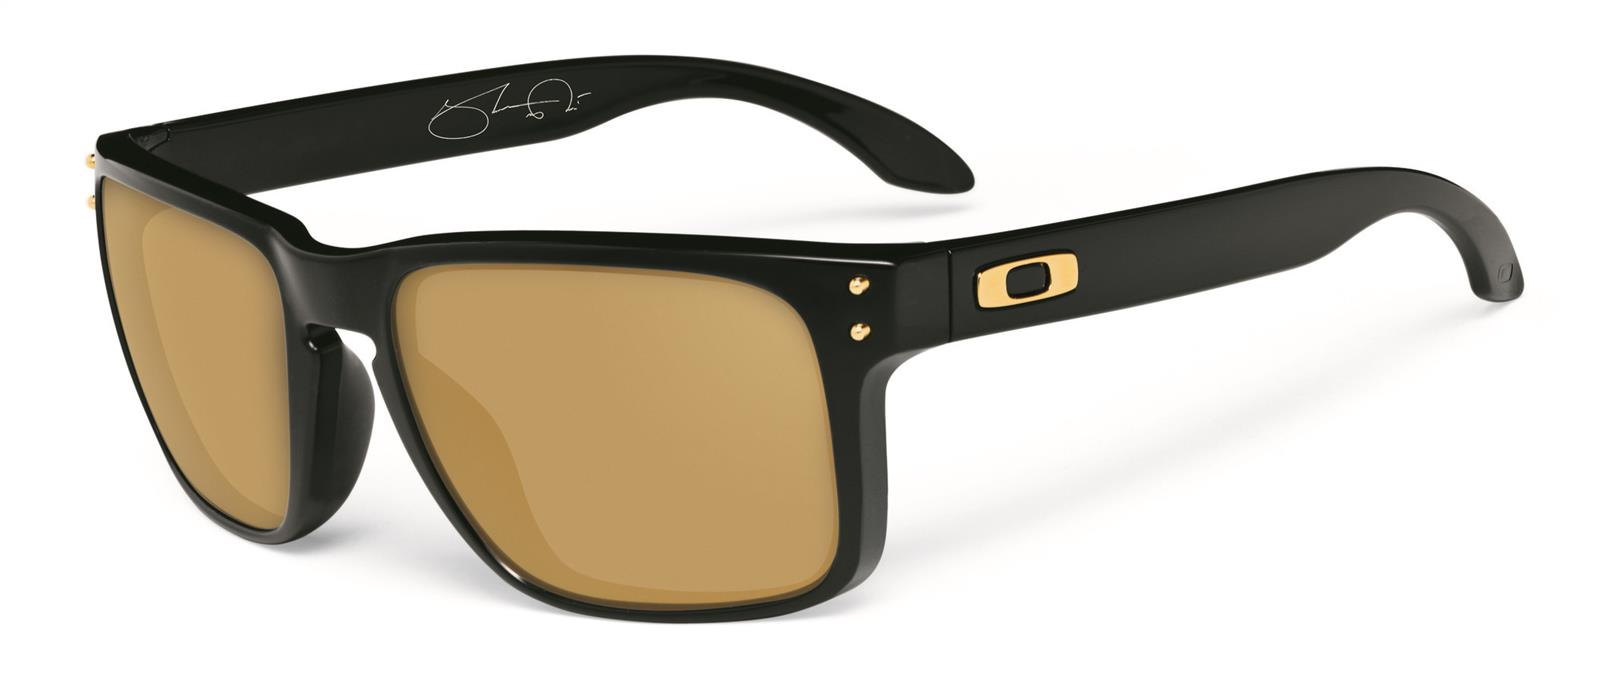 d059cefa533c Oakley Shaun White Signature Series Holbrook Sunglasses OO9102-08 - Free  Shipping on Orders Over  99 at Summit Racing